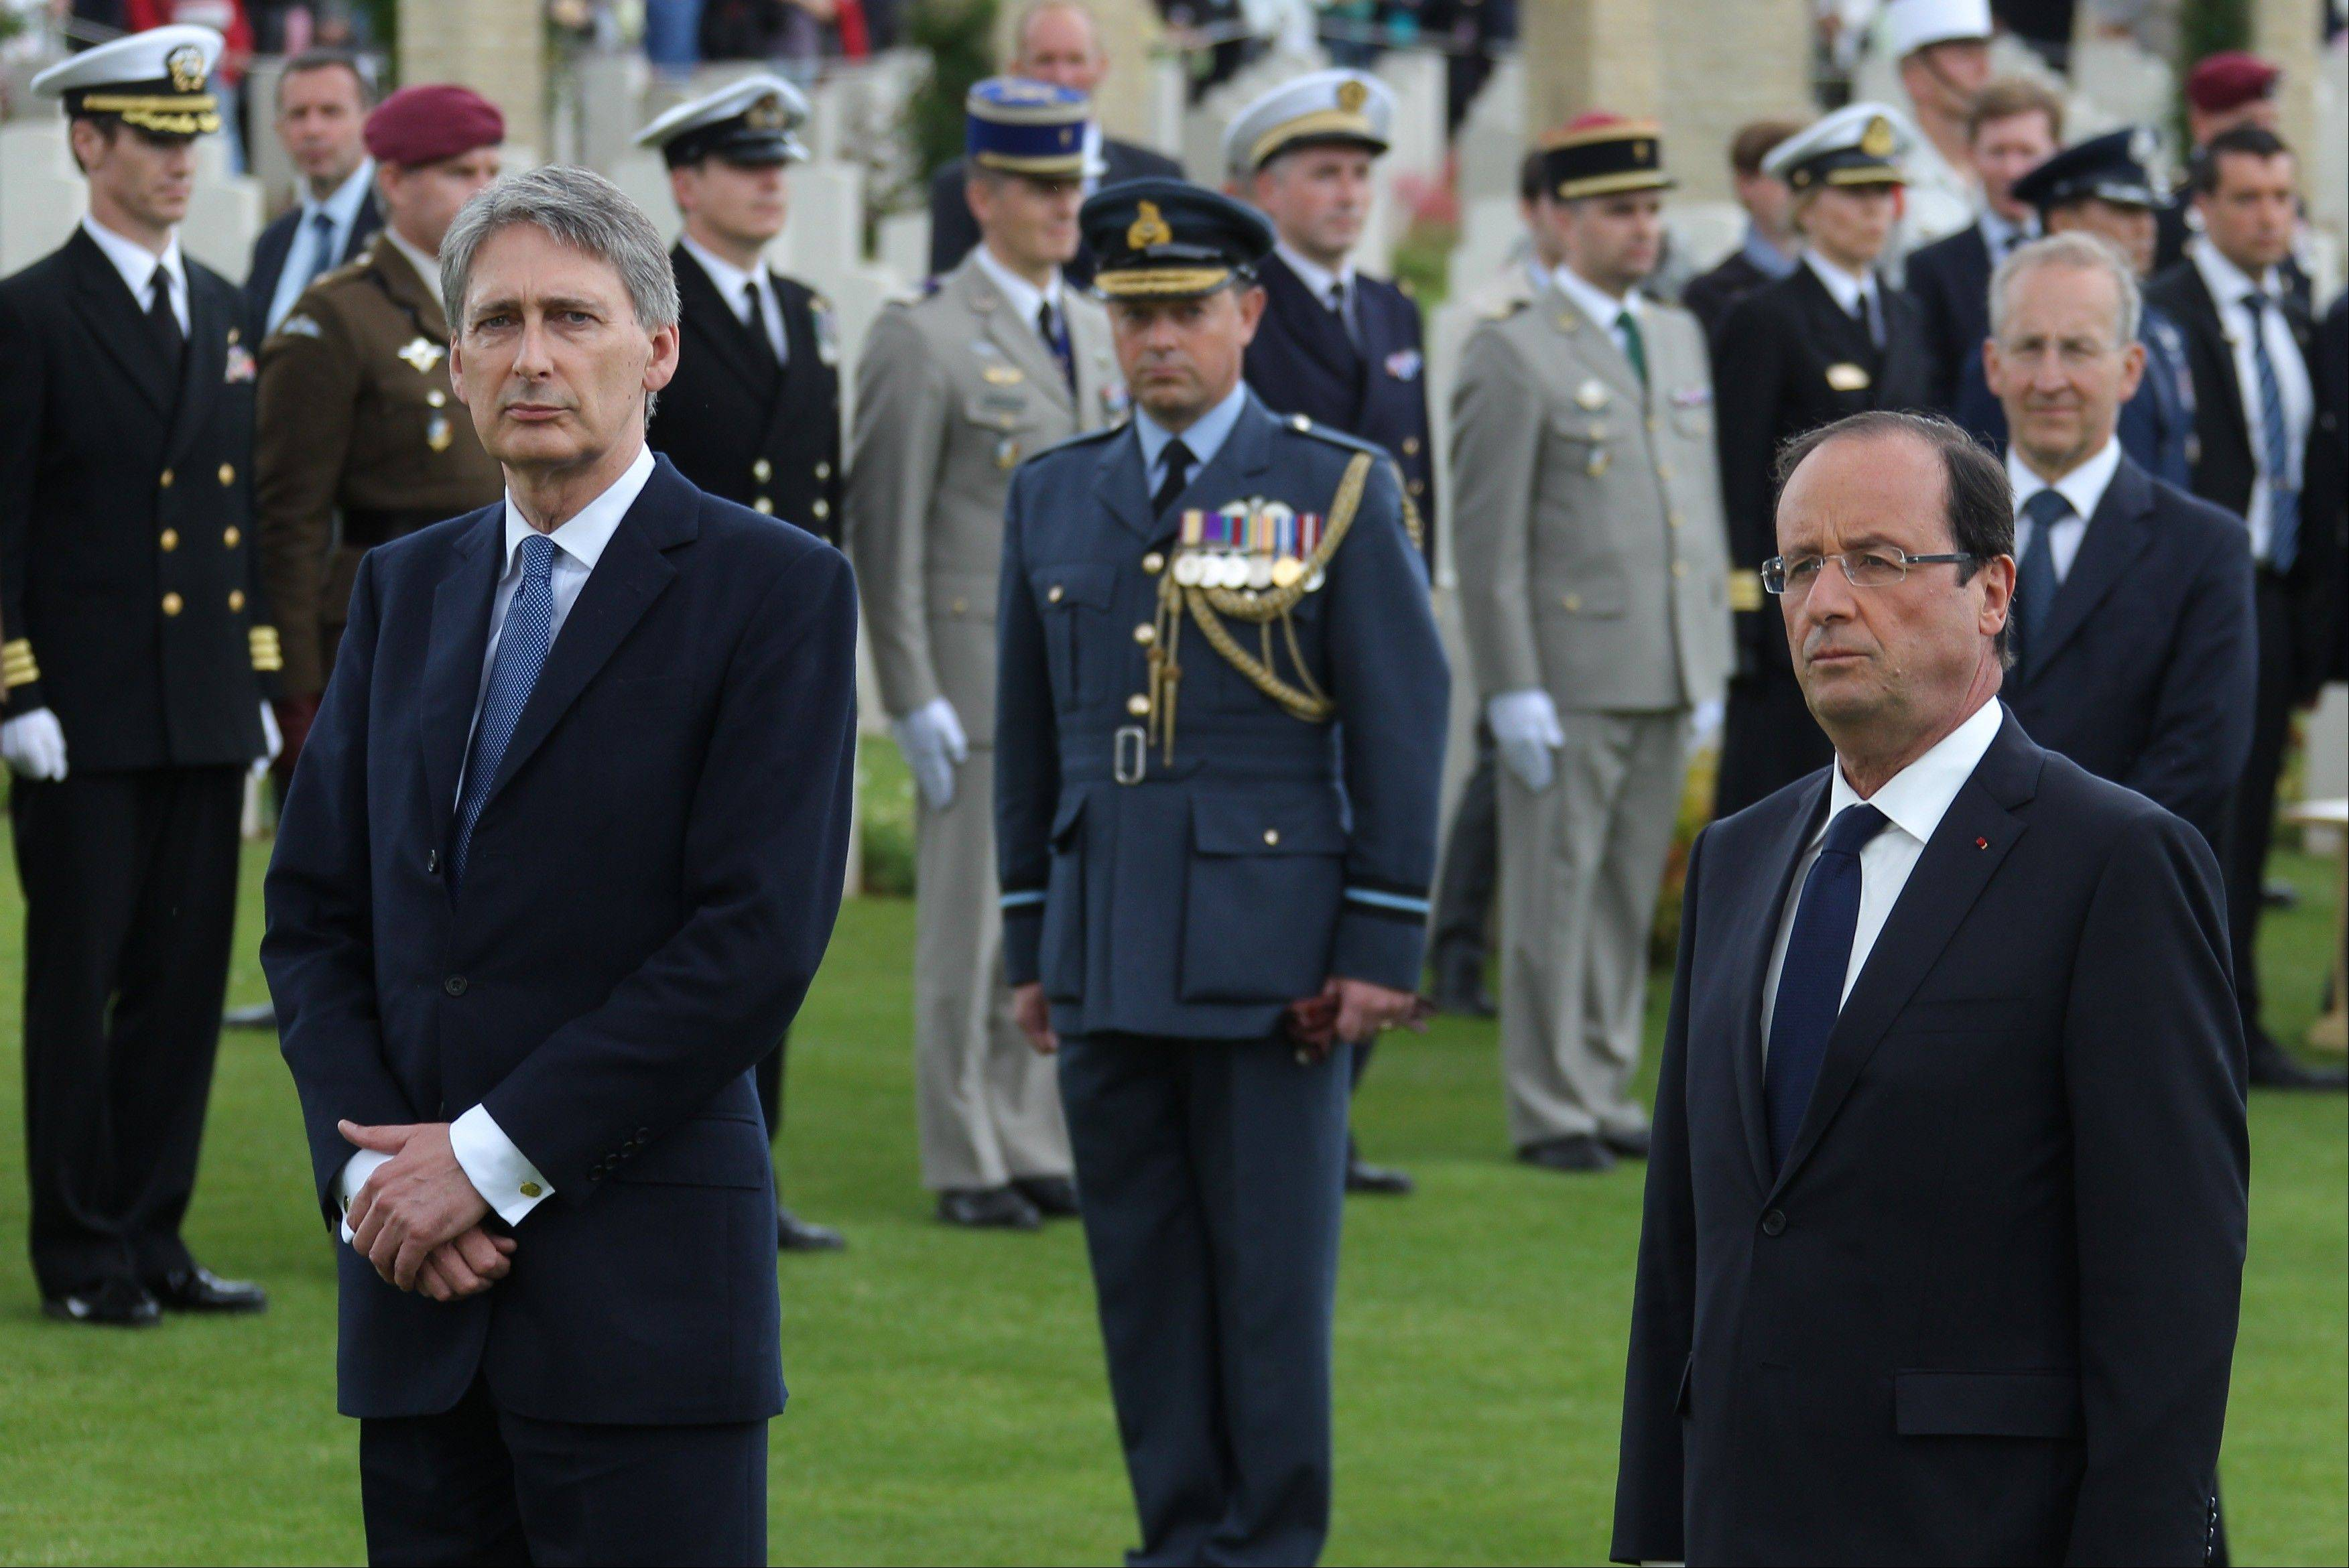 French President Francois Holland, right, and British Defense Ministry Philippe Hammond, left, take part a ceremony commemorating the 68th anniversary of the D-Day invasion of France began in 1944, in the British war cemetery of Ranville, western France, Wednesday, June 6, 2012.